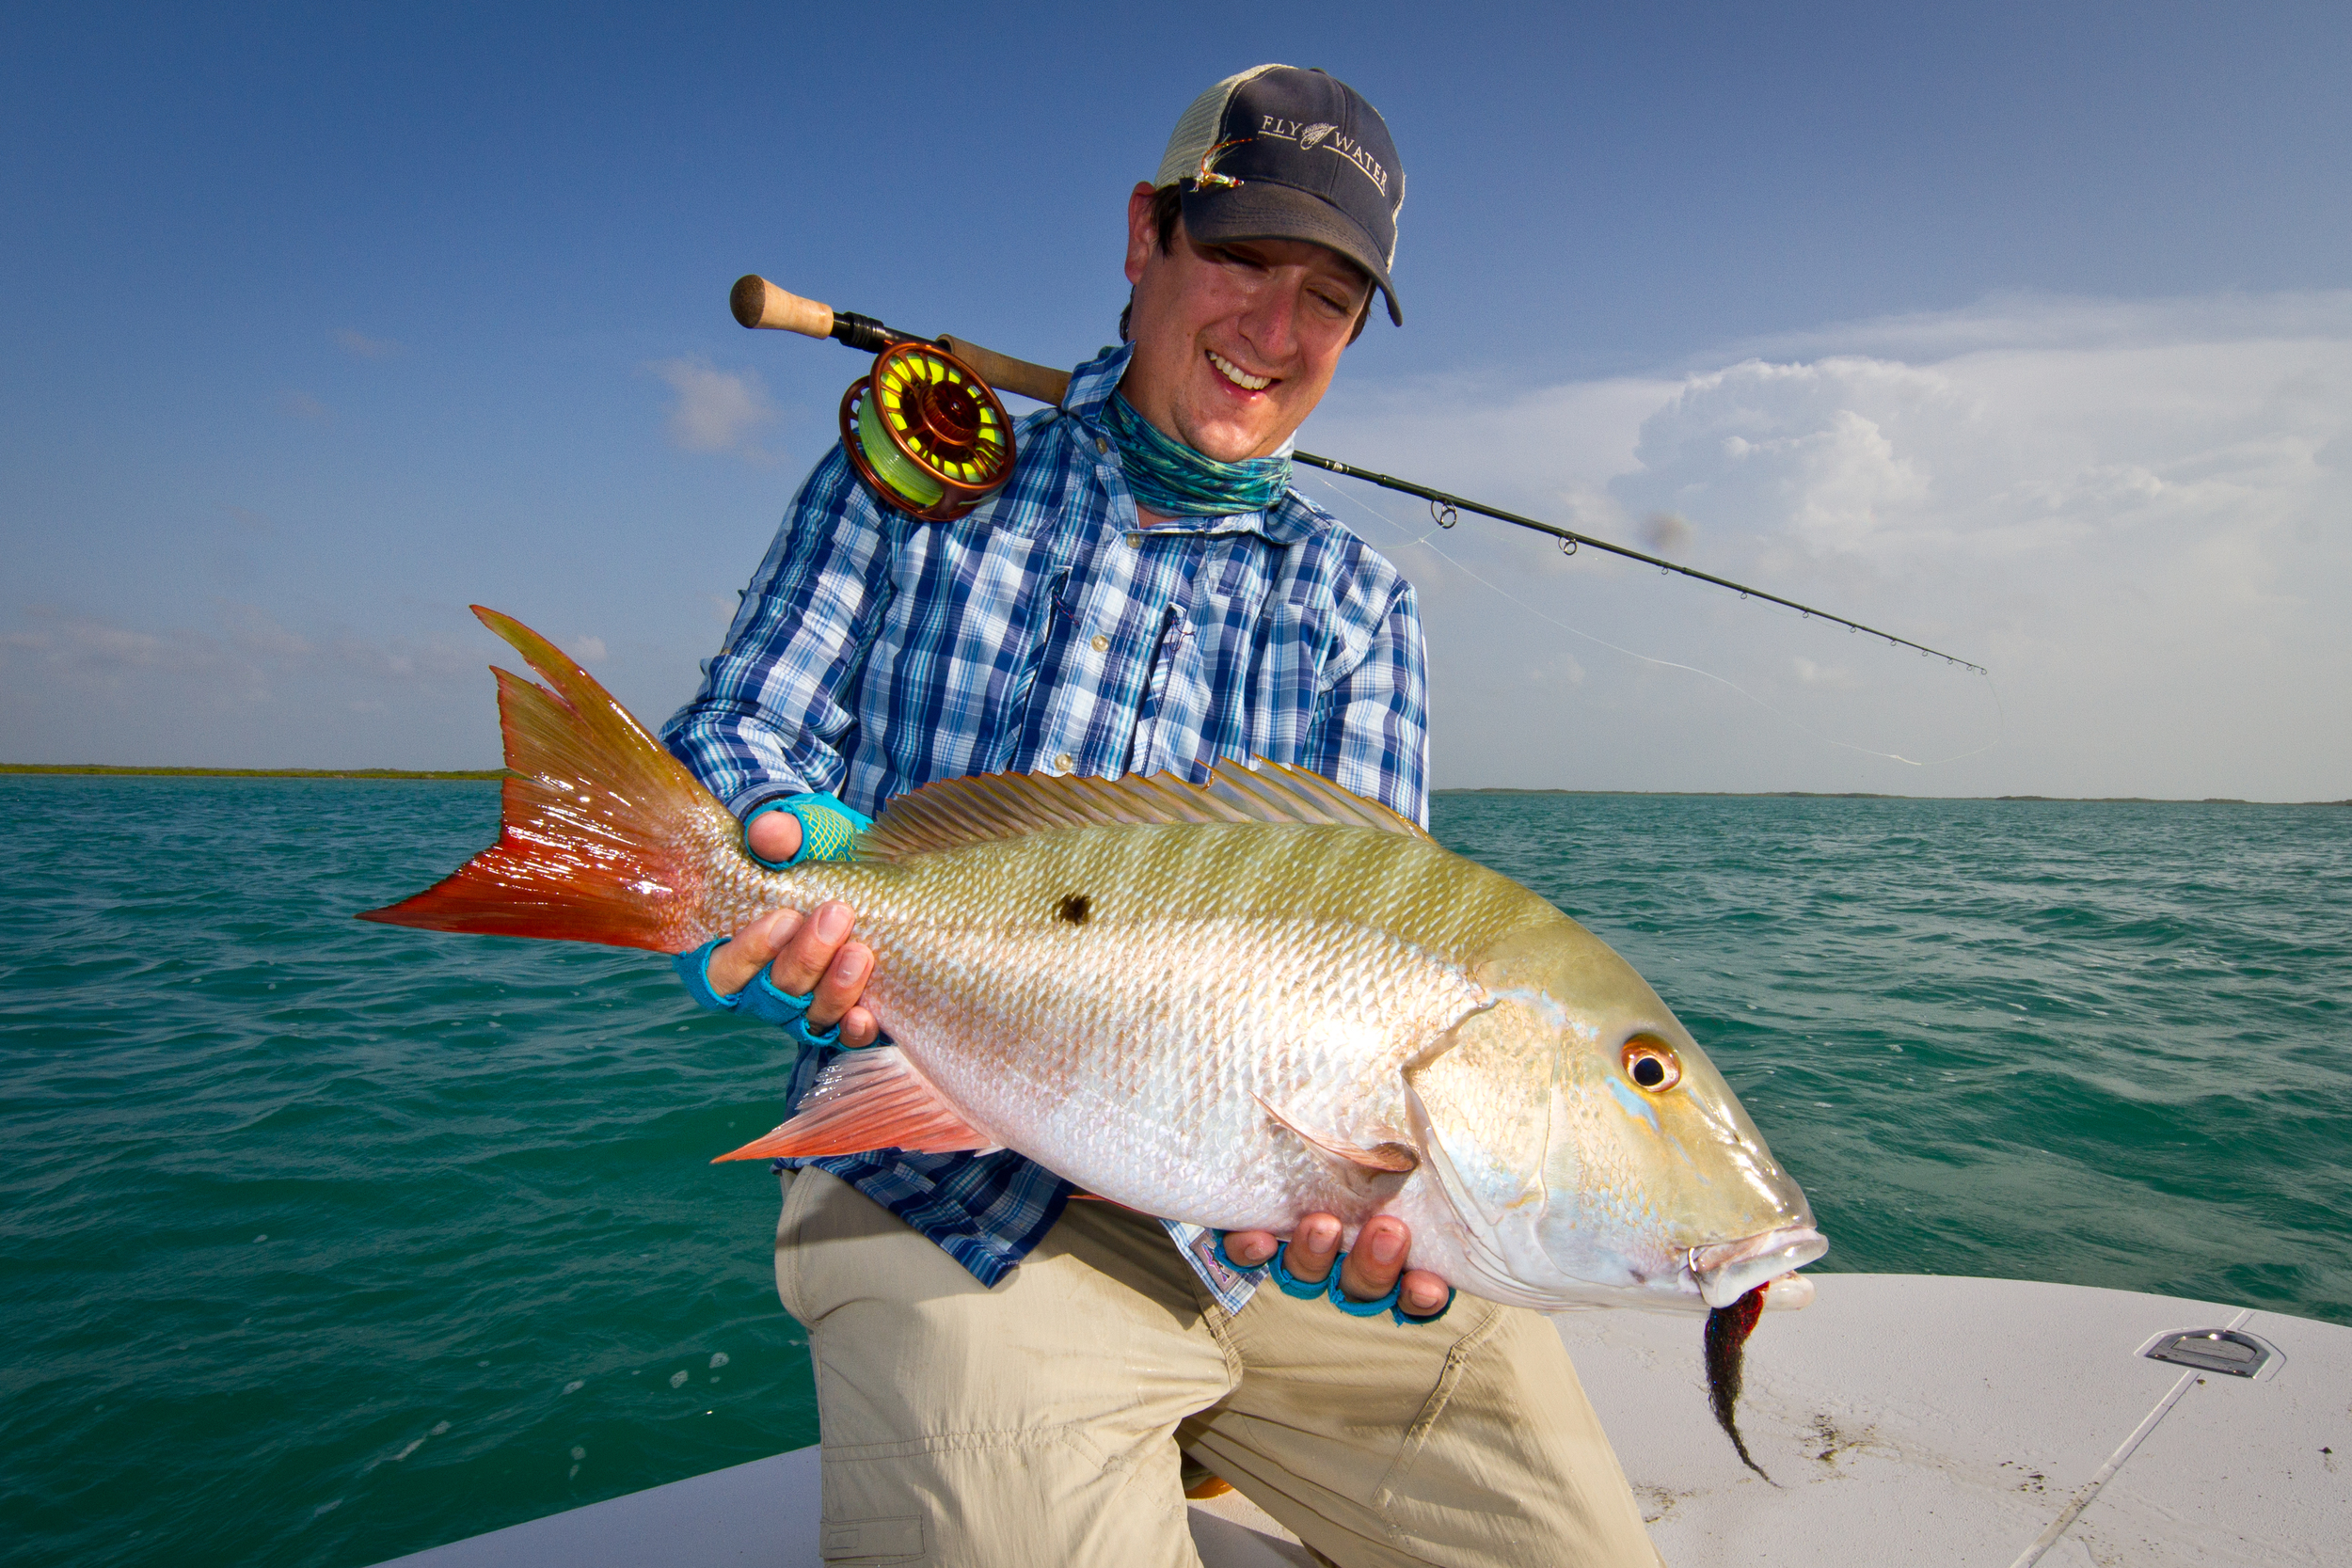 Dylan Rose with a nice Mutton Snapper, Cayo Cruz, Cuba